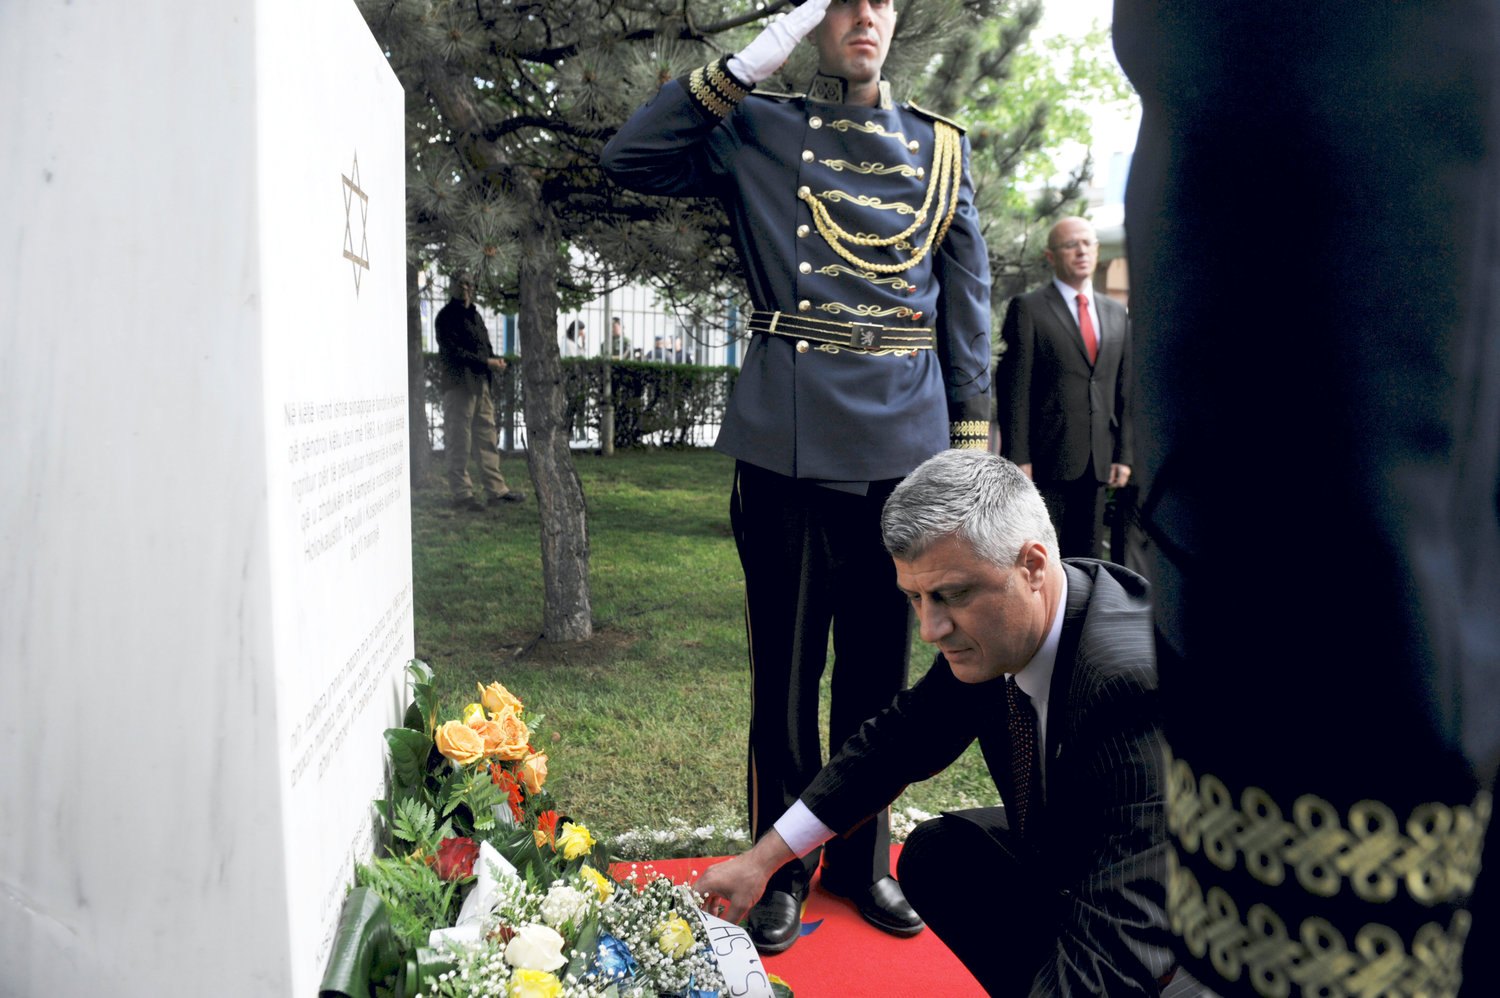 Kosovo Prime Minister Hashim Thaci places flowers in Pristina, May 23, 2013, on the commemorative plaque remembering Kosovo Jews who perished in the Shoah, at the site where the last synagogue of Kosovo stood until 1963.